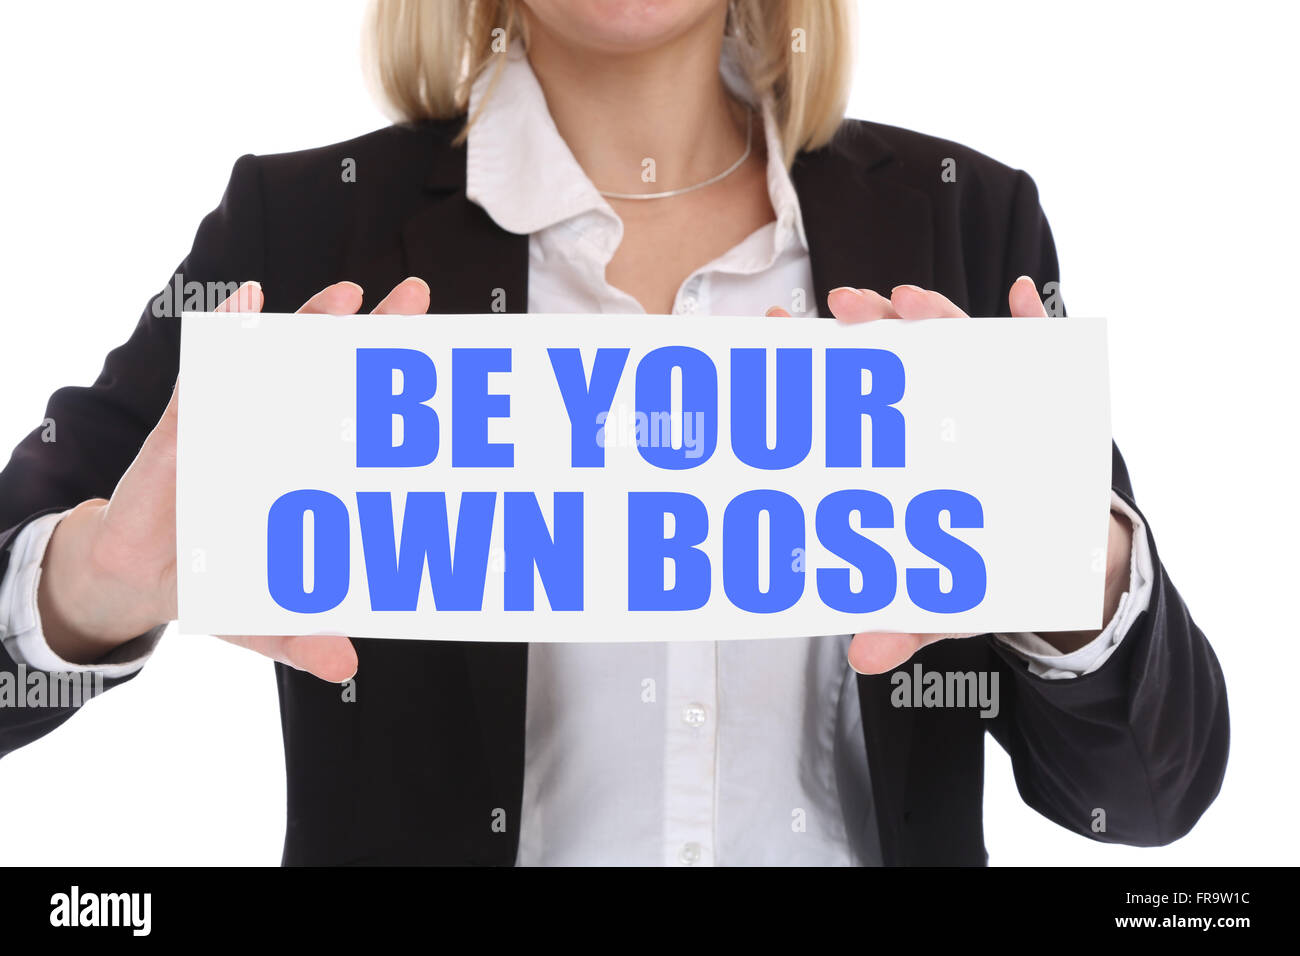 Self-employed self employed employment be your own boss business concept in office - Stock Image